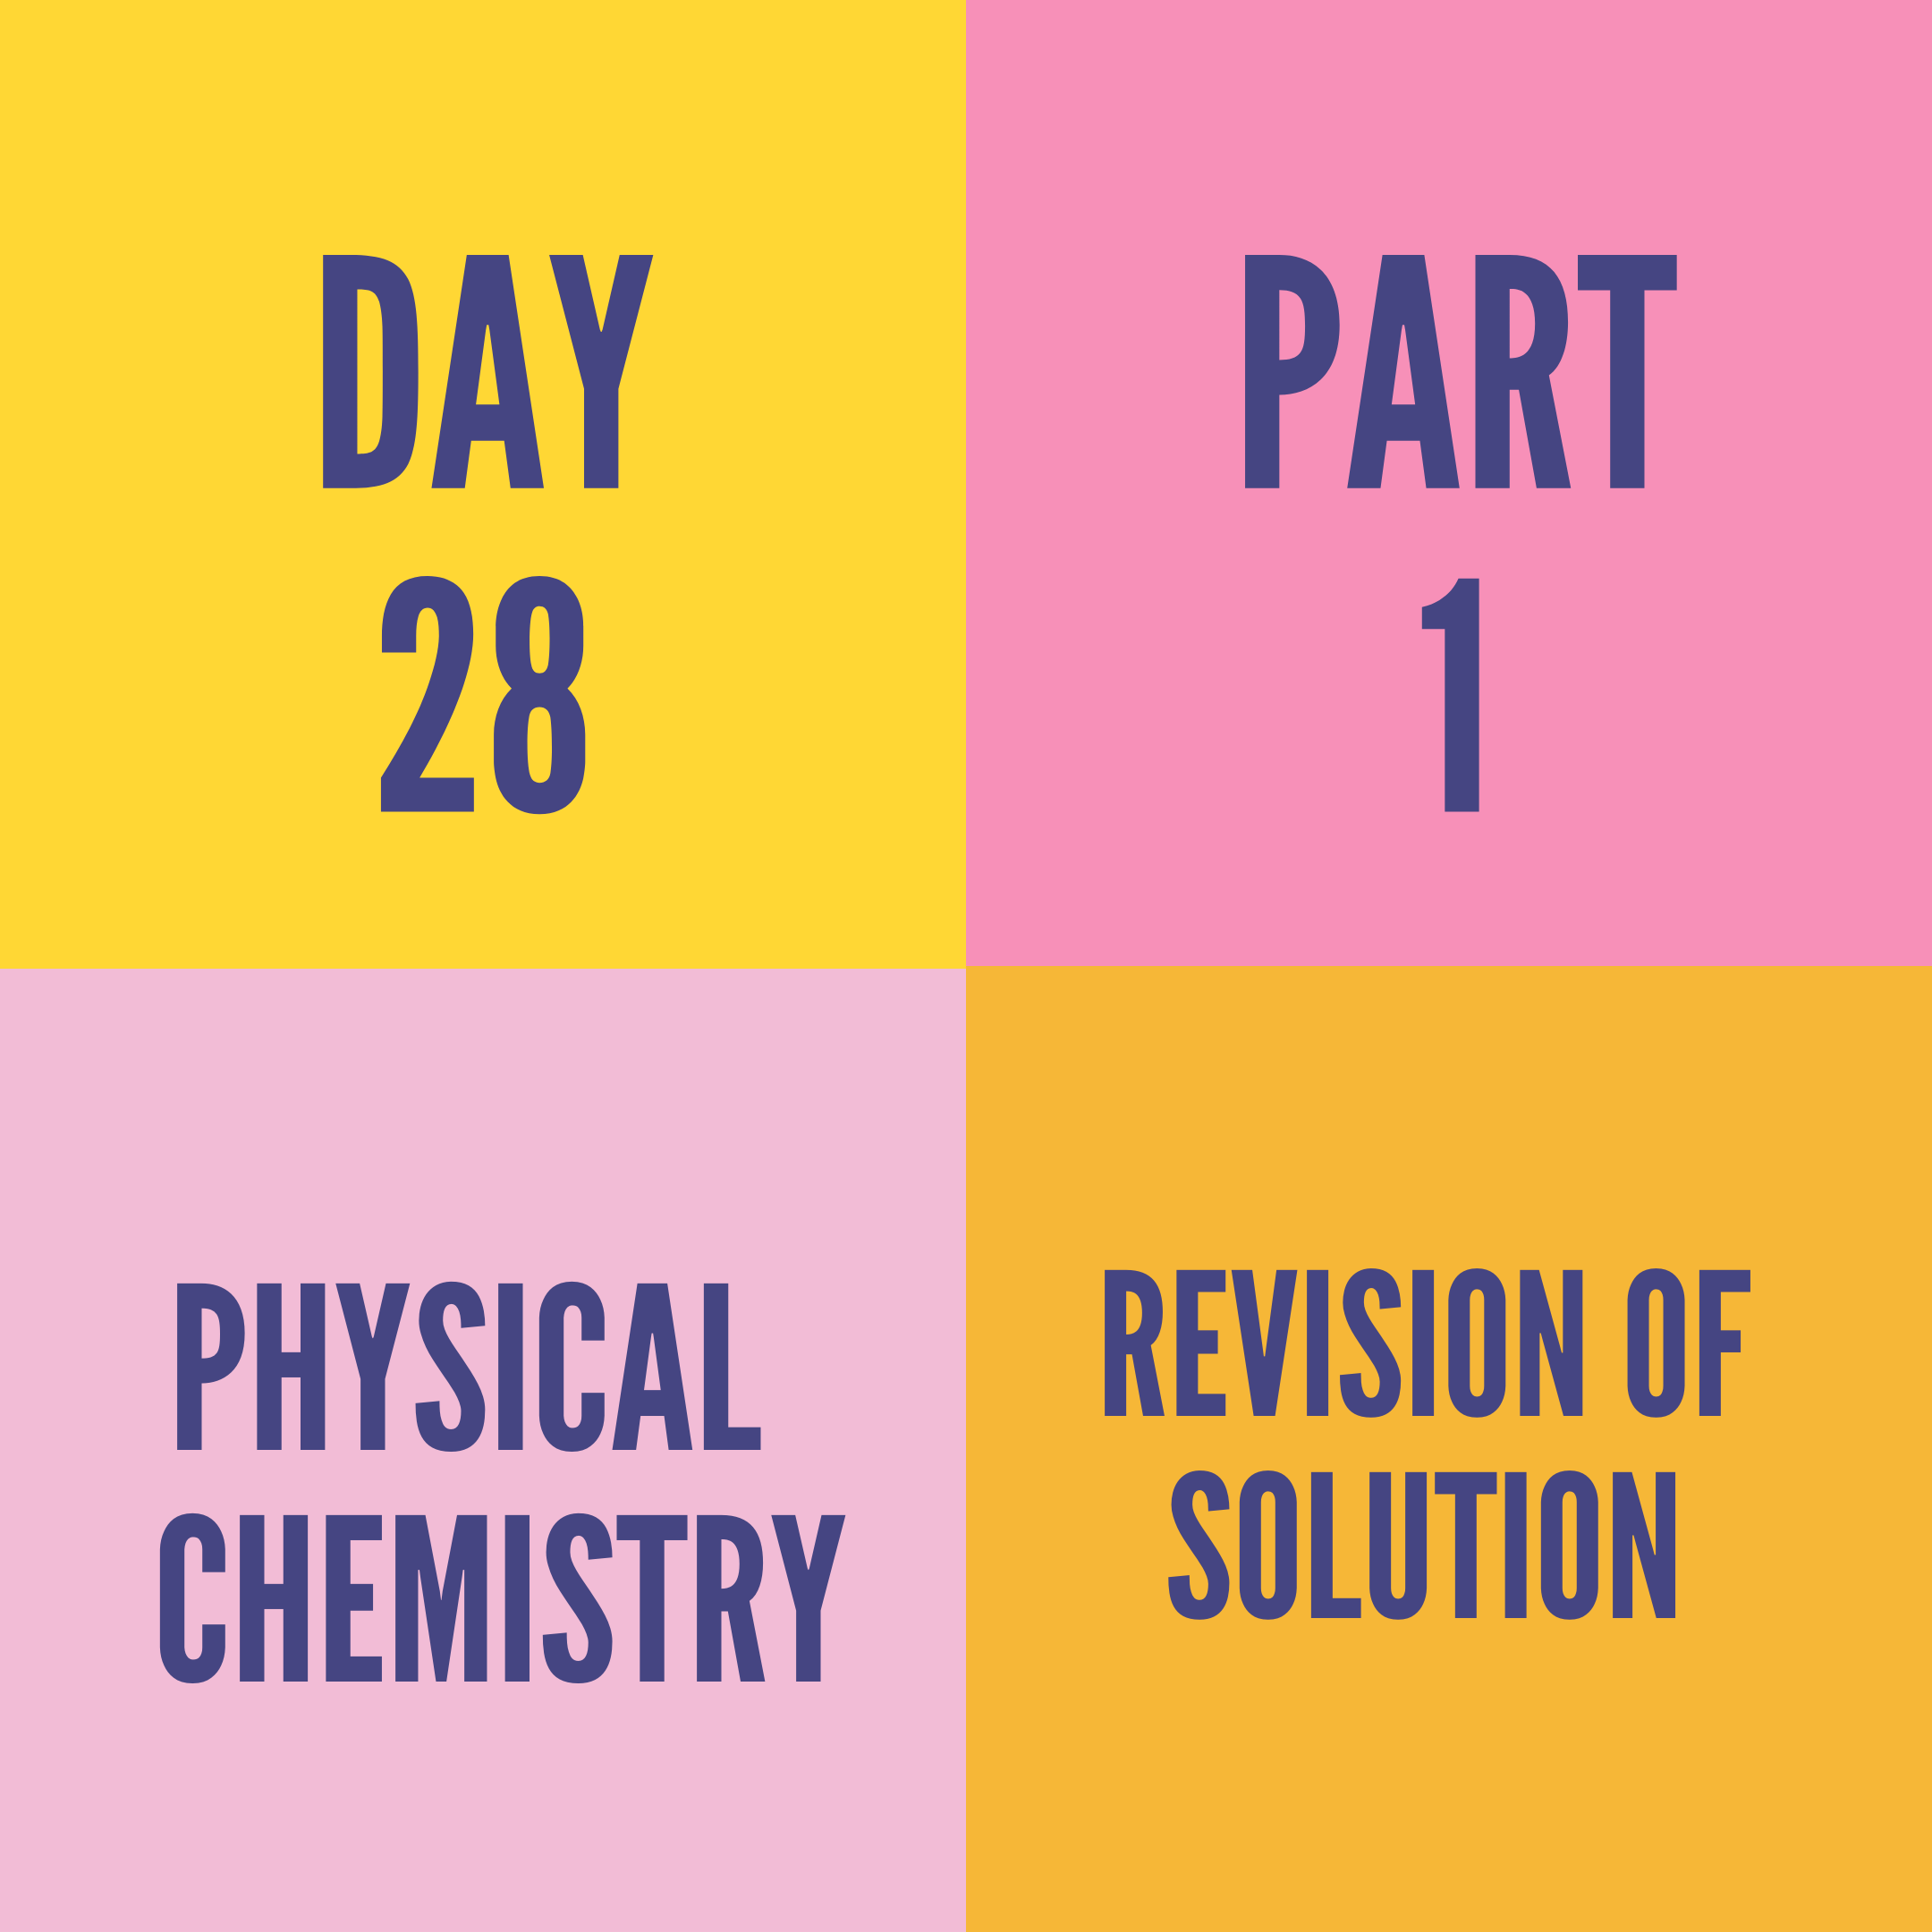 DAY-28 PART-1 REVISION OF SOLUTION